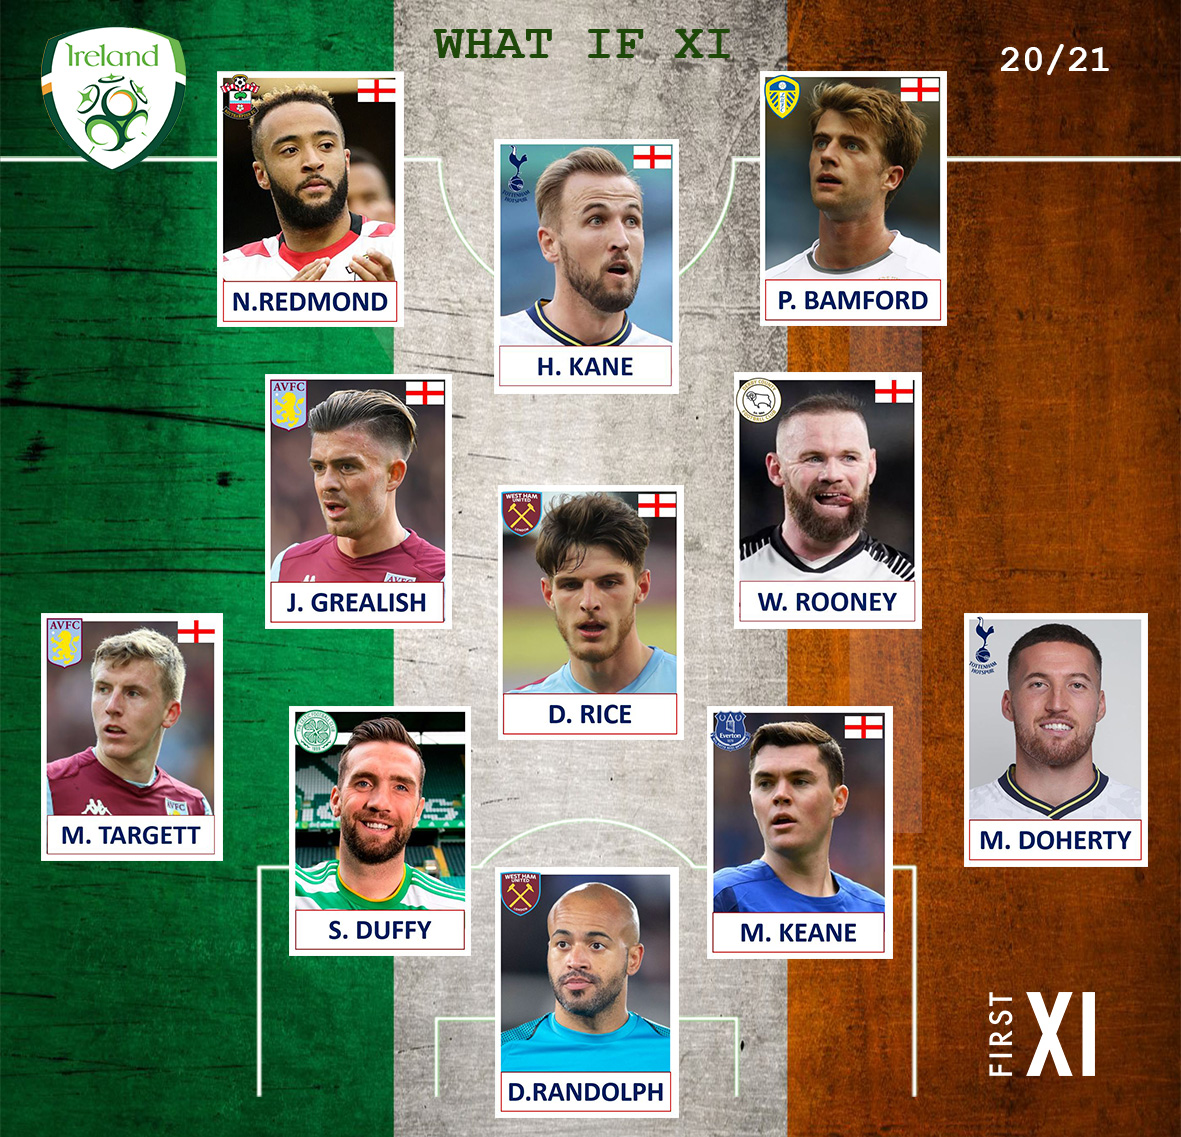 Irish XI